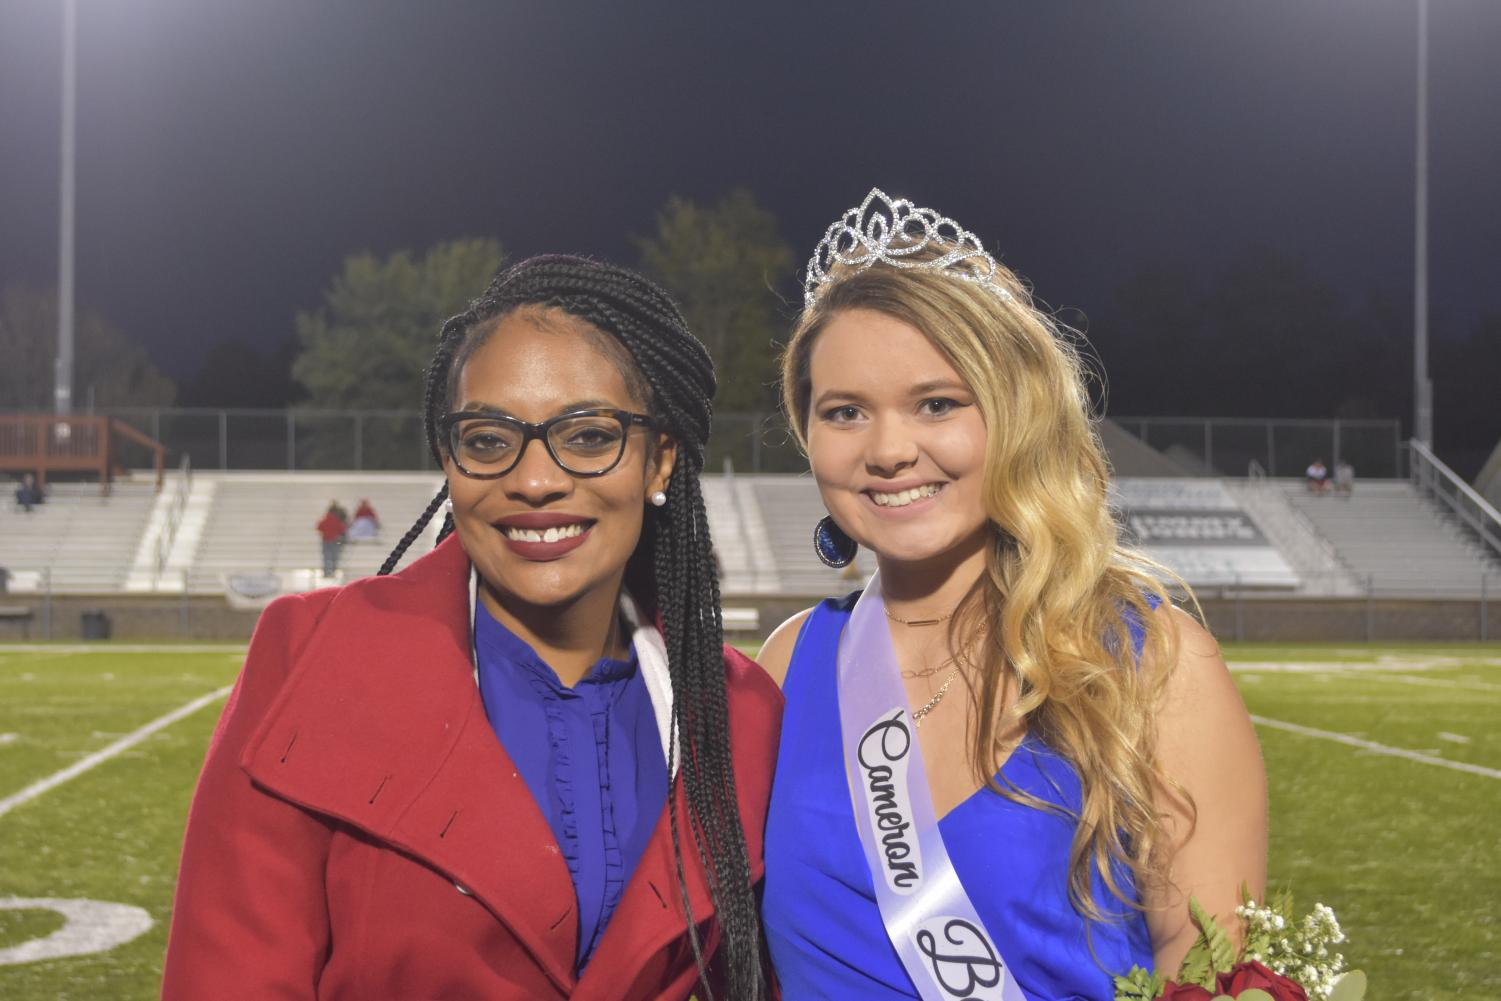 Principal Meocha Williams crowned senior Cameron Berryman as the 2018 Homecoming Queen on October, 12, 2018.